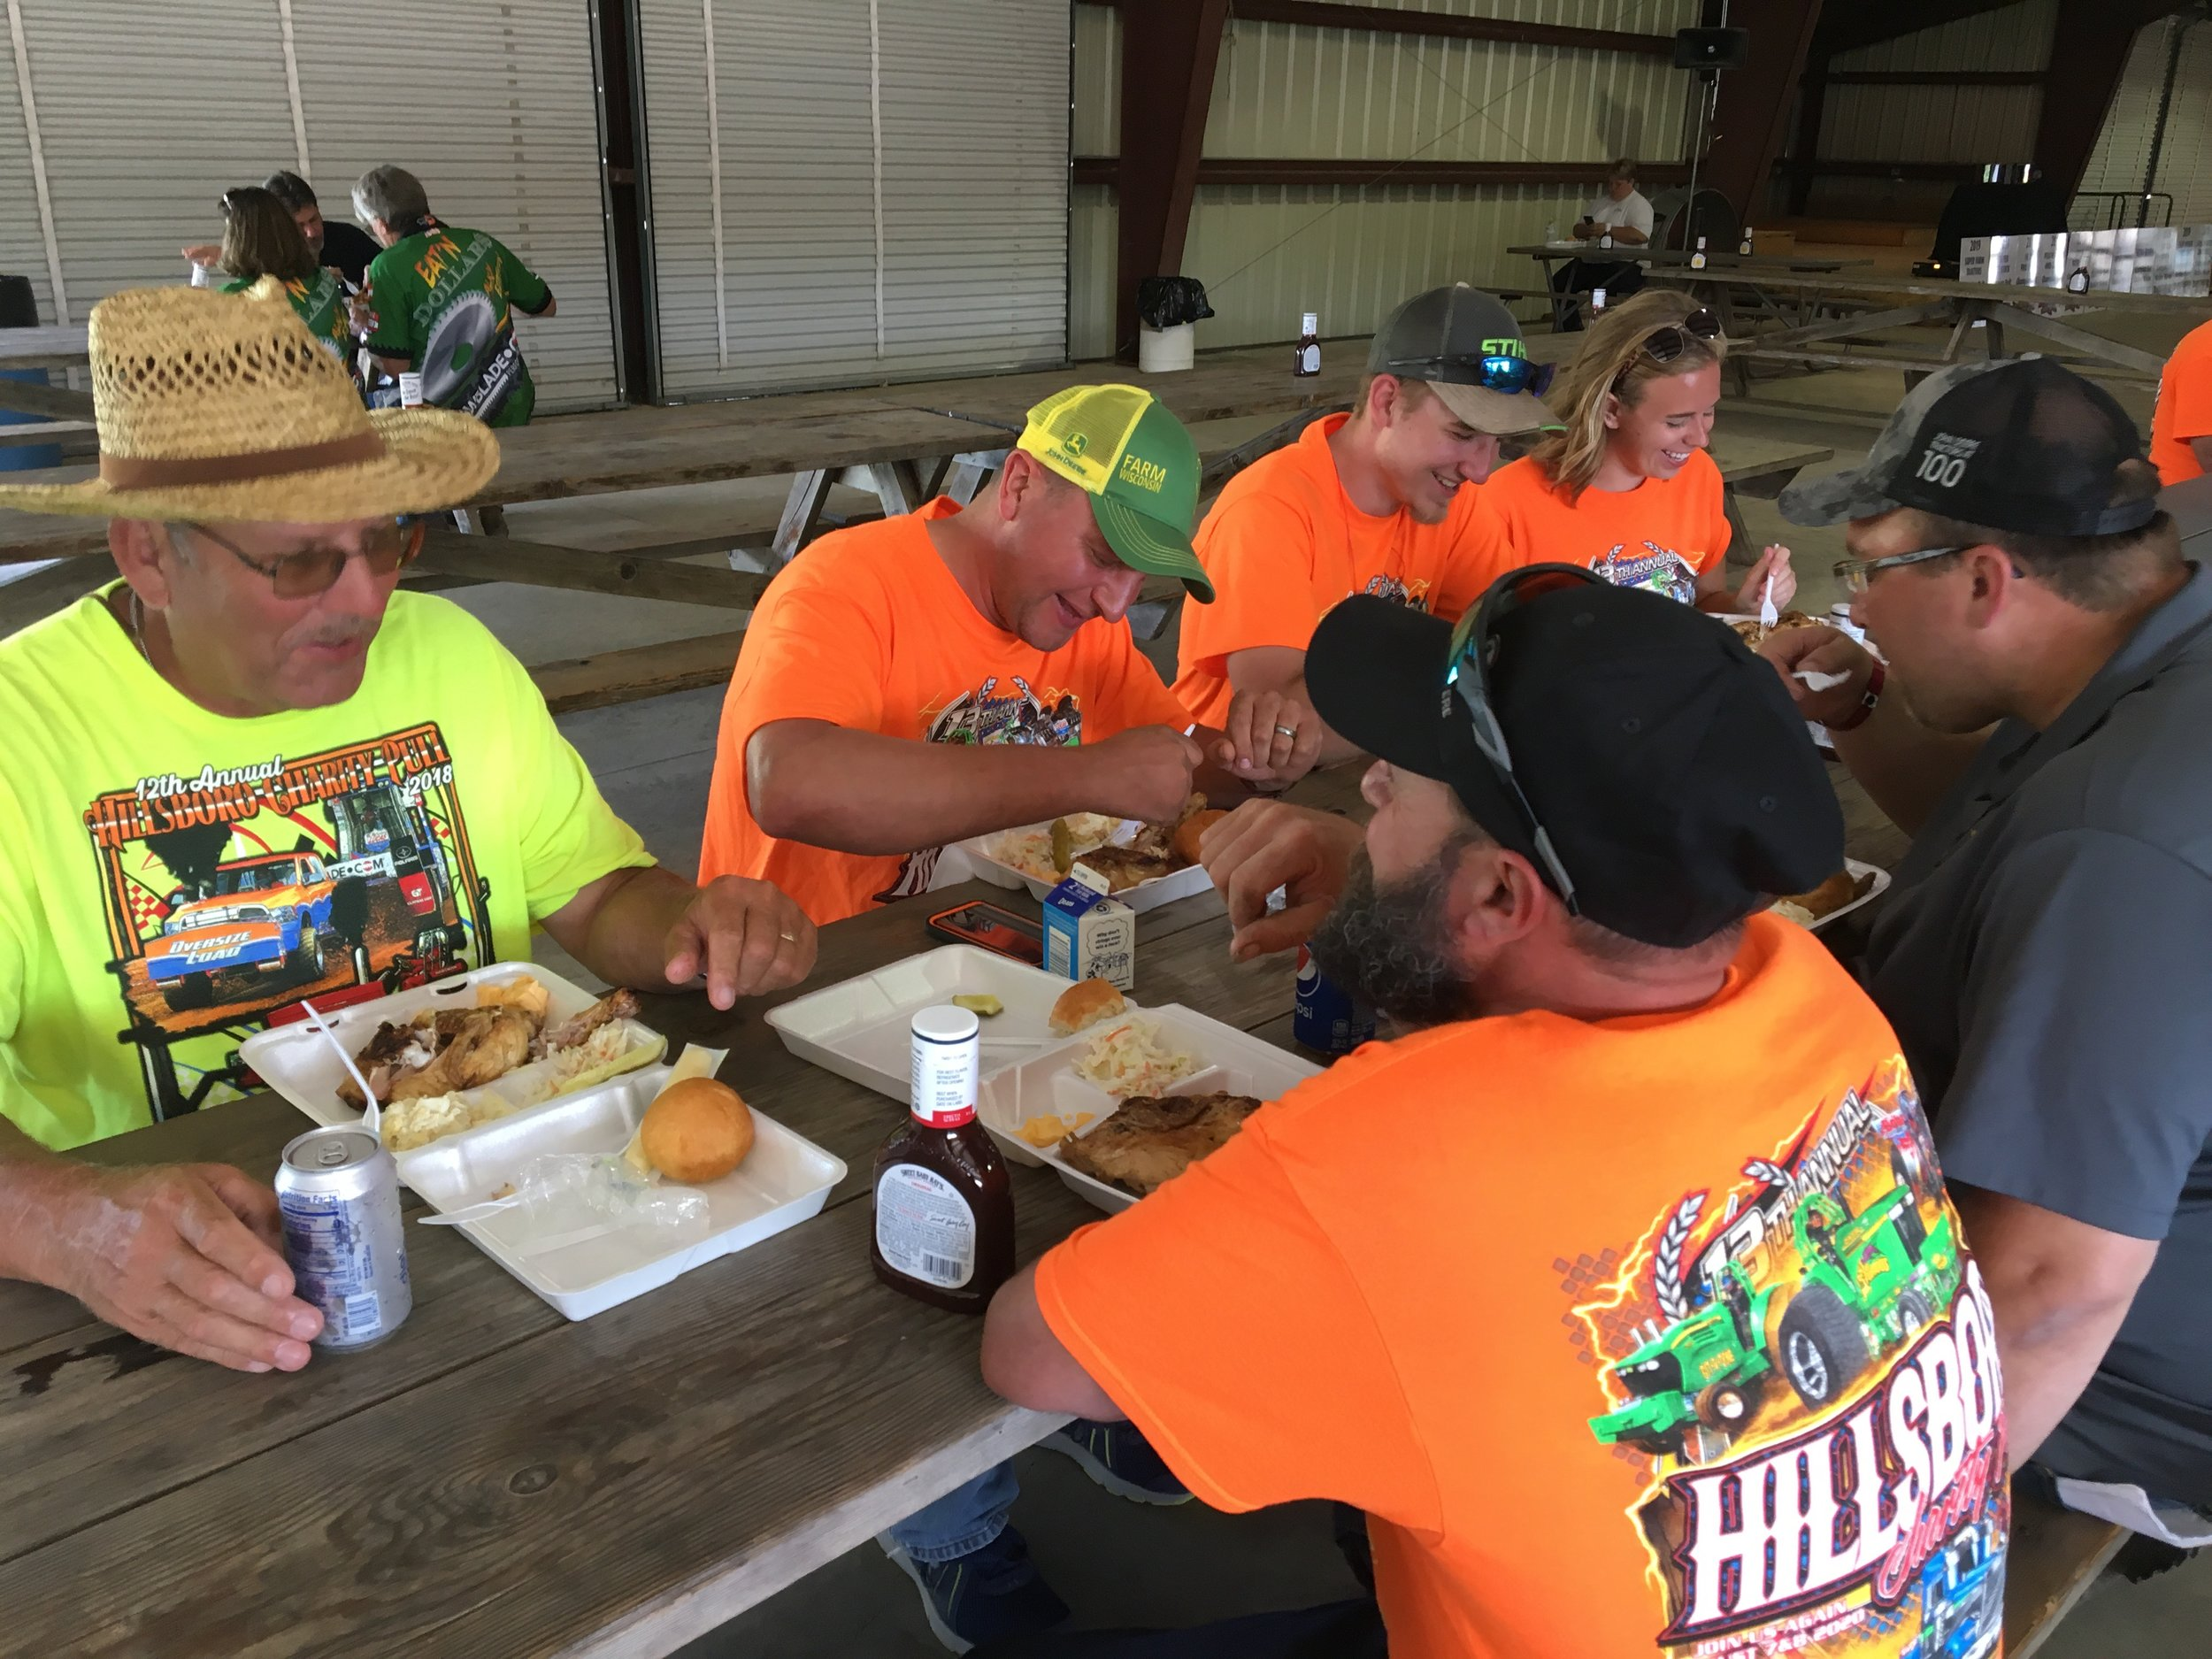 A few of the many volunteers from Hillsboro Equipment, Inc. chowing down